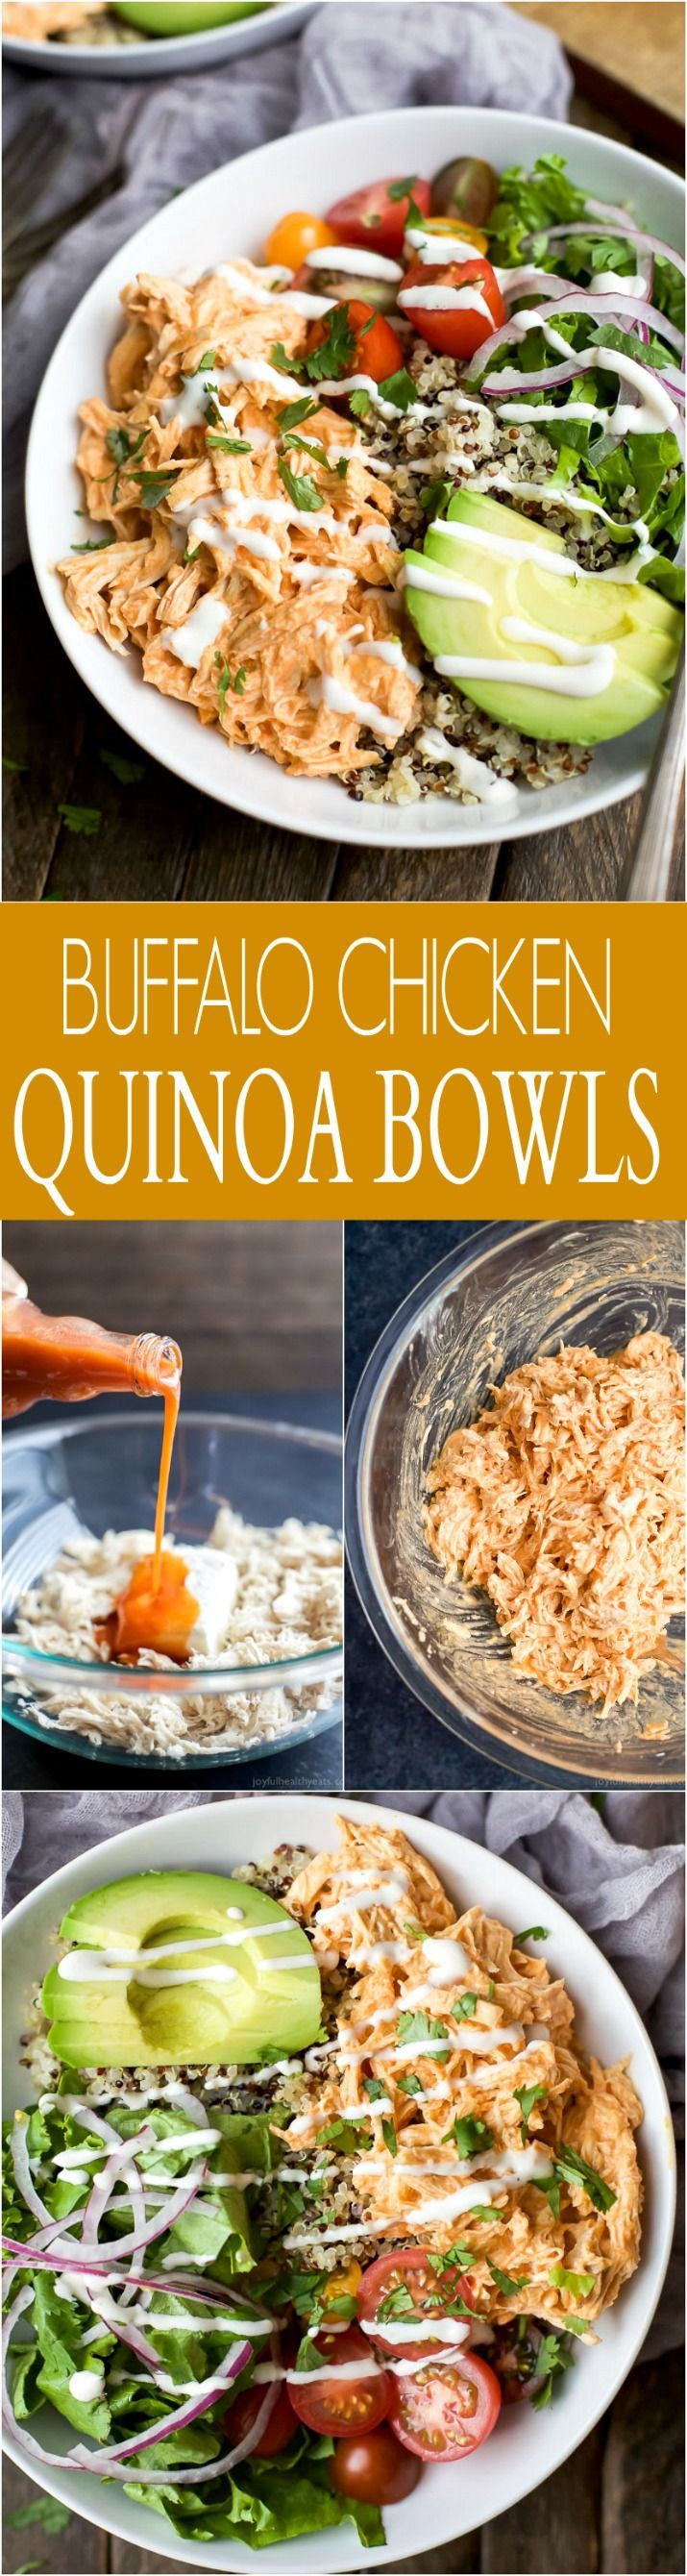 Buffalo Chicken Quinoa Bowls topped with avocado, tomato, shredded buffalo chicken, drizzled with ranch and served on a bed of quinoa. Football food just got a healthy facelift!   joyfulhealthyeats.com #glutenfree